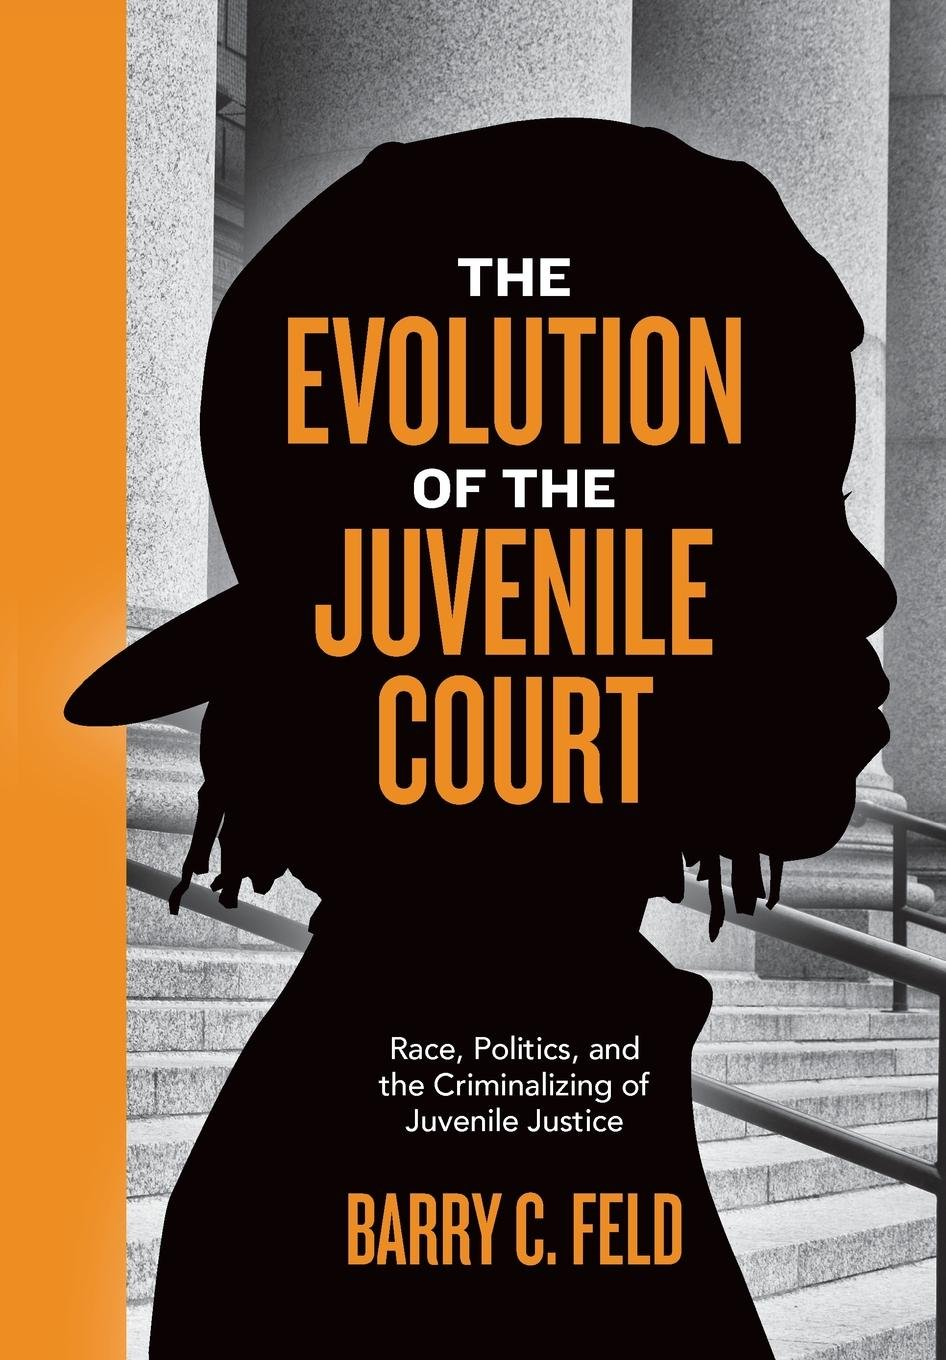 The Evolution of the Juvenile Court: Race, Politics, and the Criminalizing of Juvenile Justice (Youth, Crime, and Justice) ebook